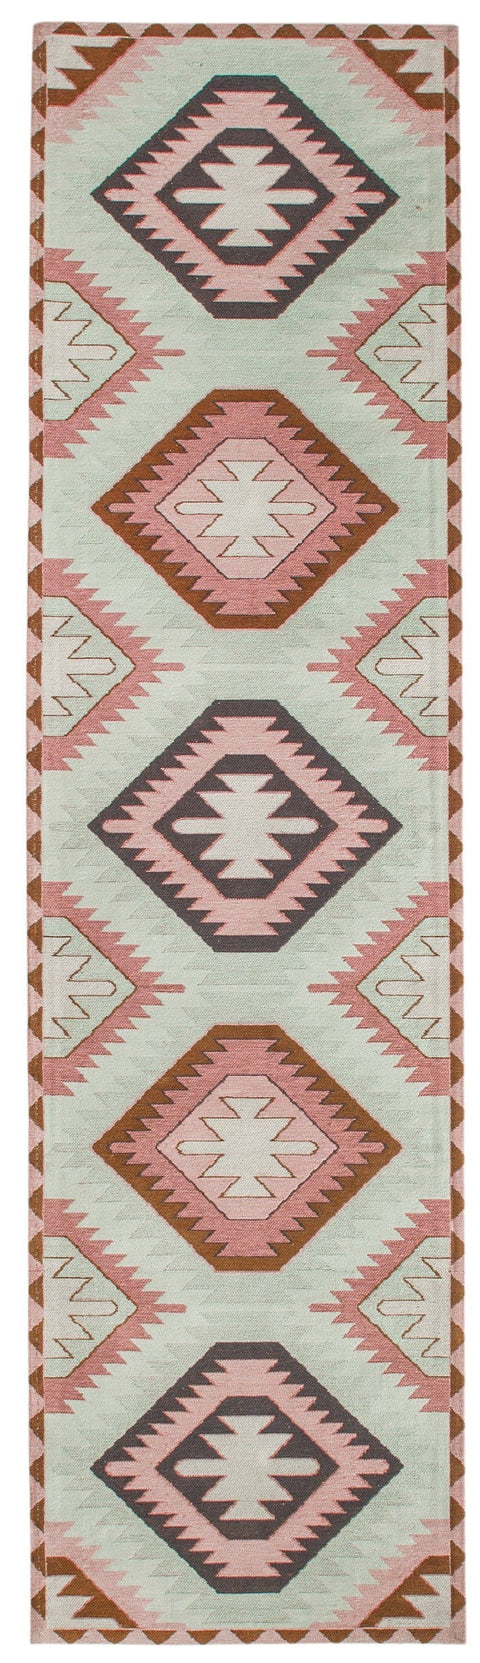 Suzie Pink and Green Pastel Tribal Print Runner Rug